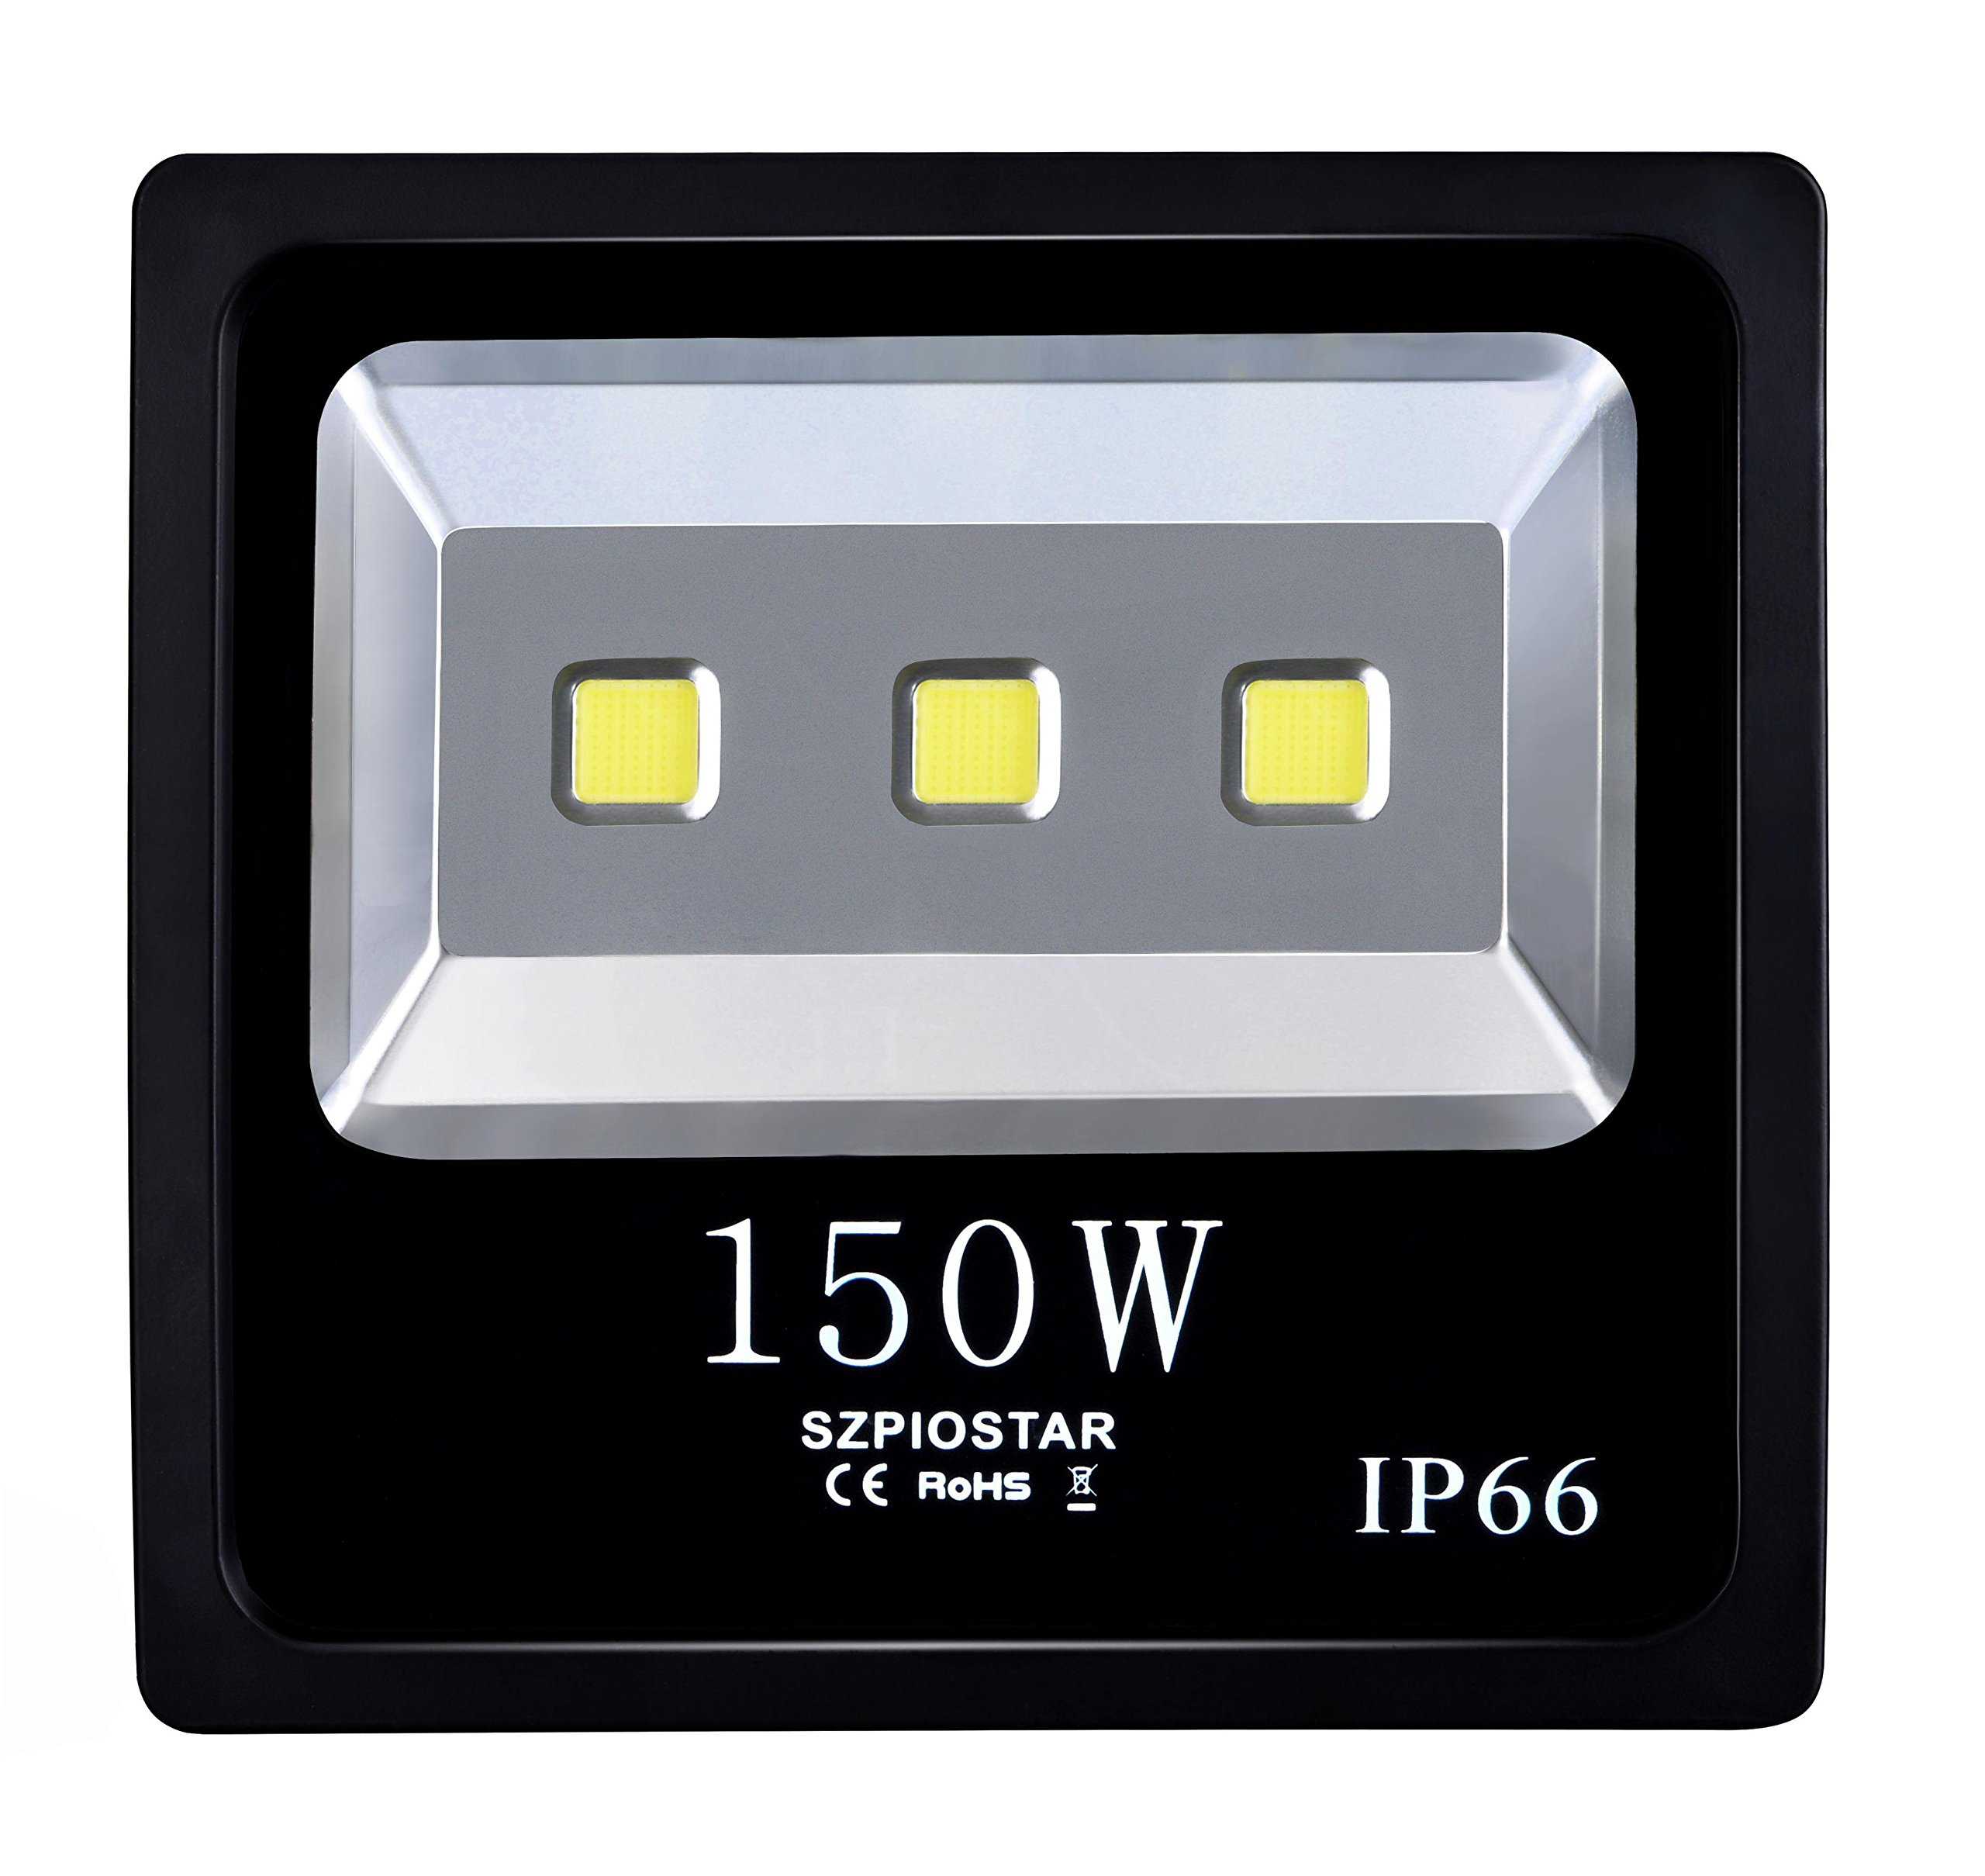 SZPIOSTAR 150W LED Flood Light, Warm White 3000K, 15000 lumens, Outdoor Waterproof Light Fixtures for Driveway Garage